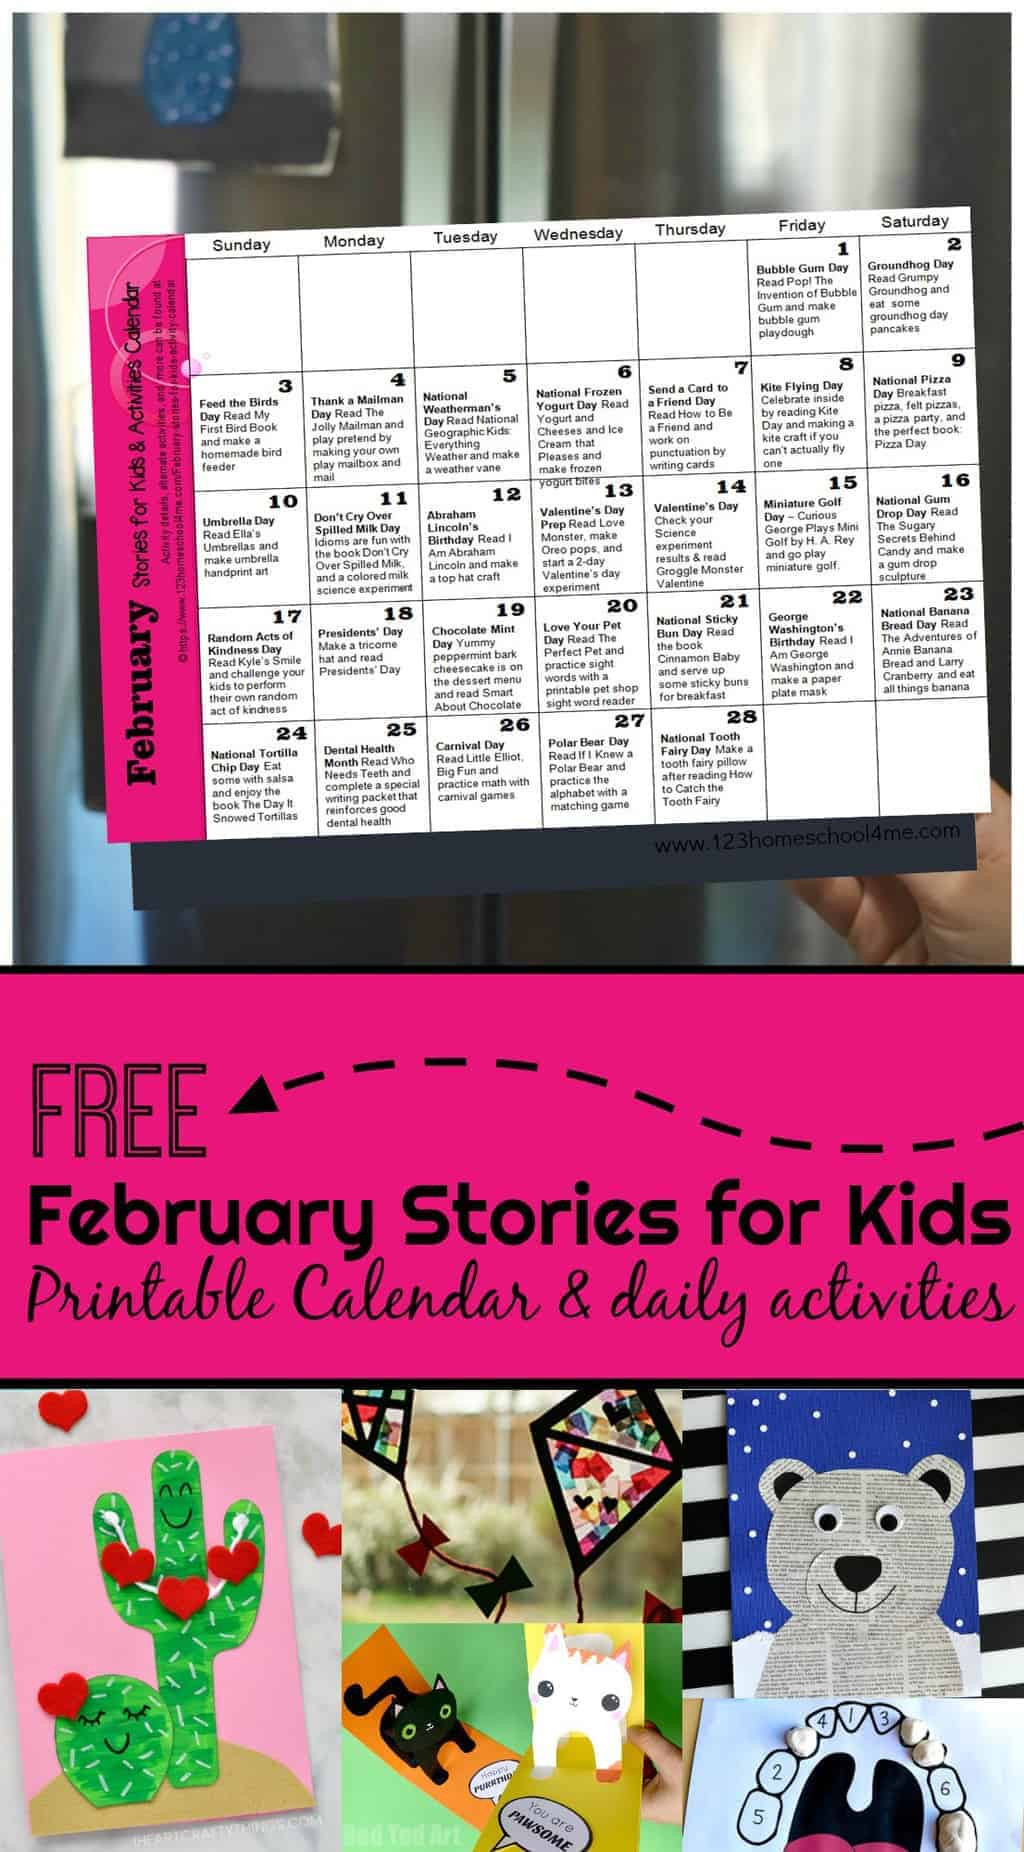 Bubble Gum Math Worksheets February Stories for Kids with Activity Calendar